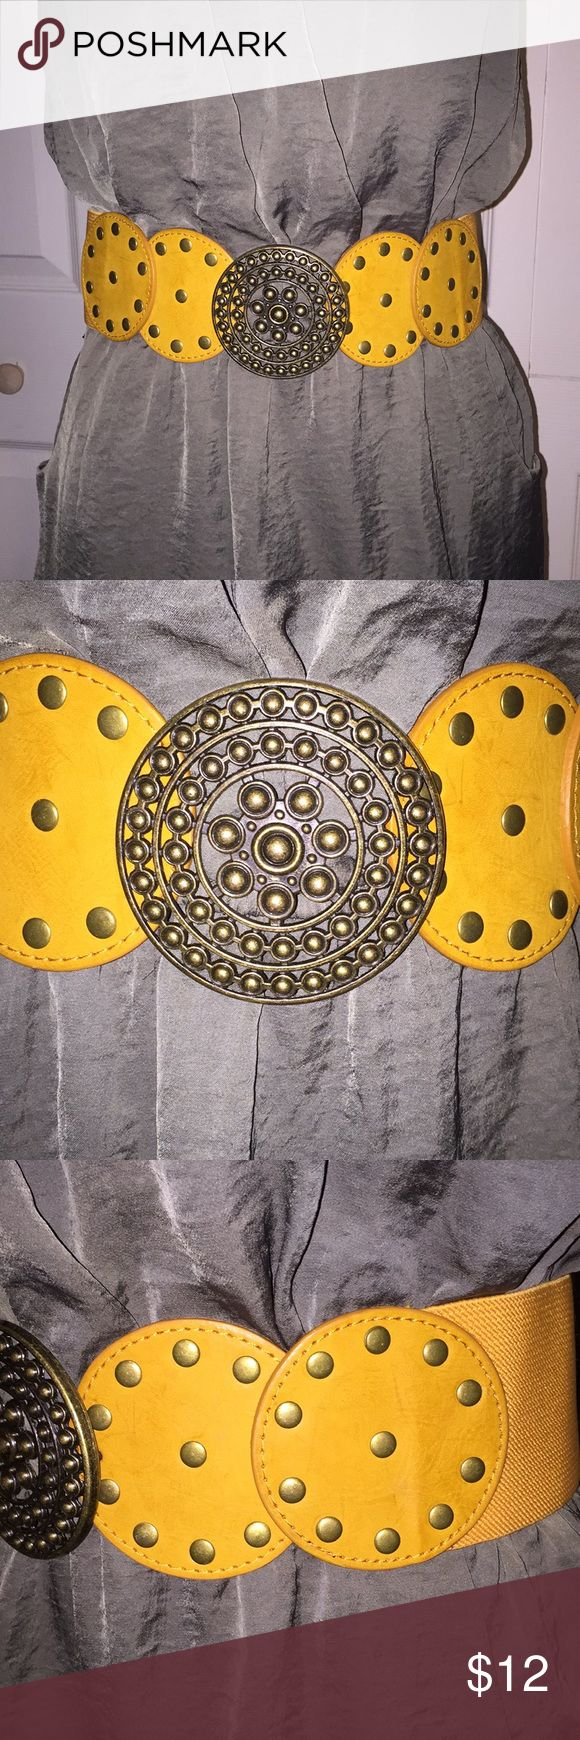 "Mustard medallion wide stretch belt Beautiful medallion mustard yellow belt! Hook closure, stretch to fit, 29""-Like new! Accessories Belts"